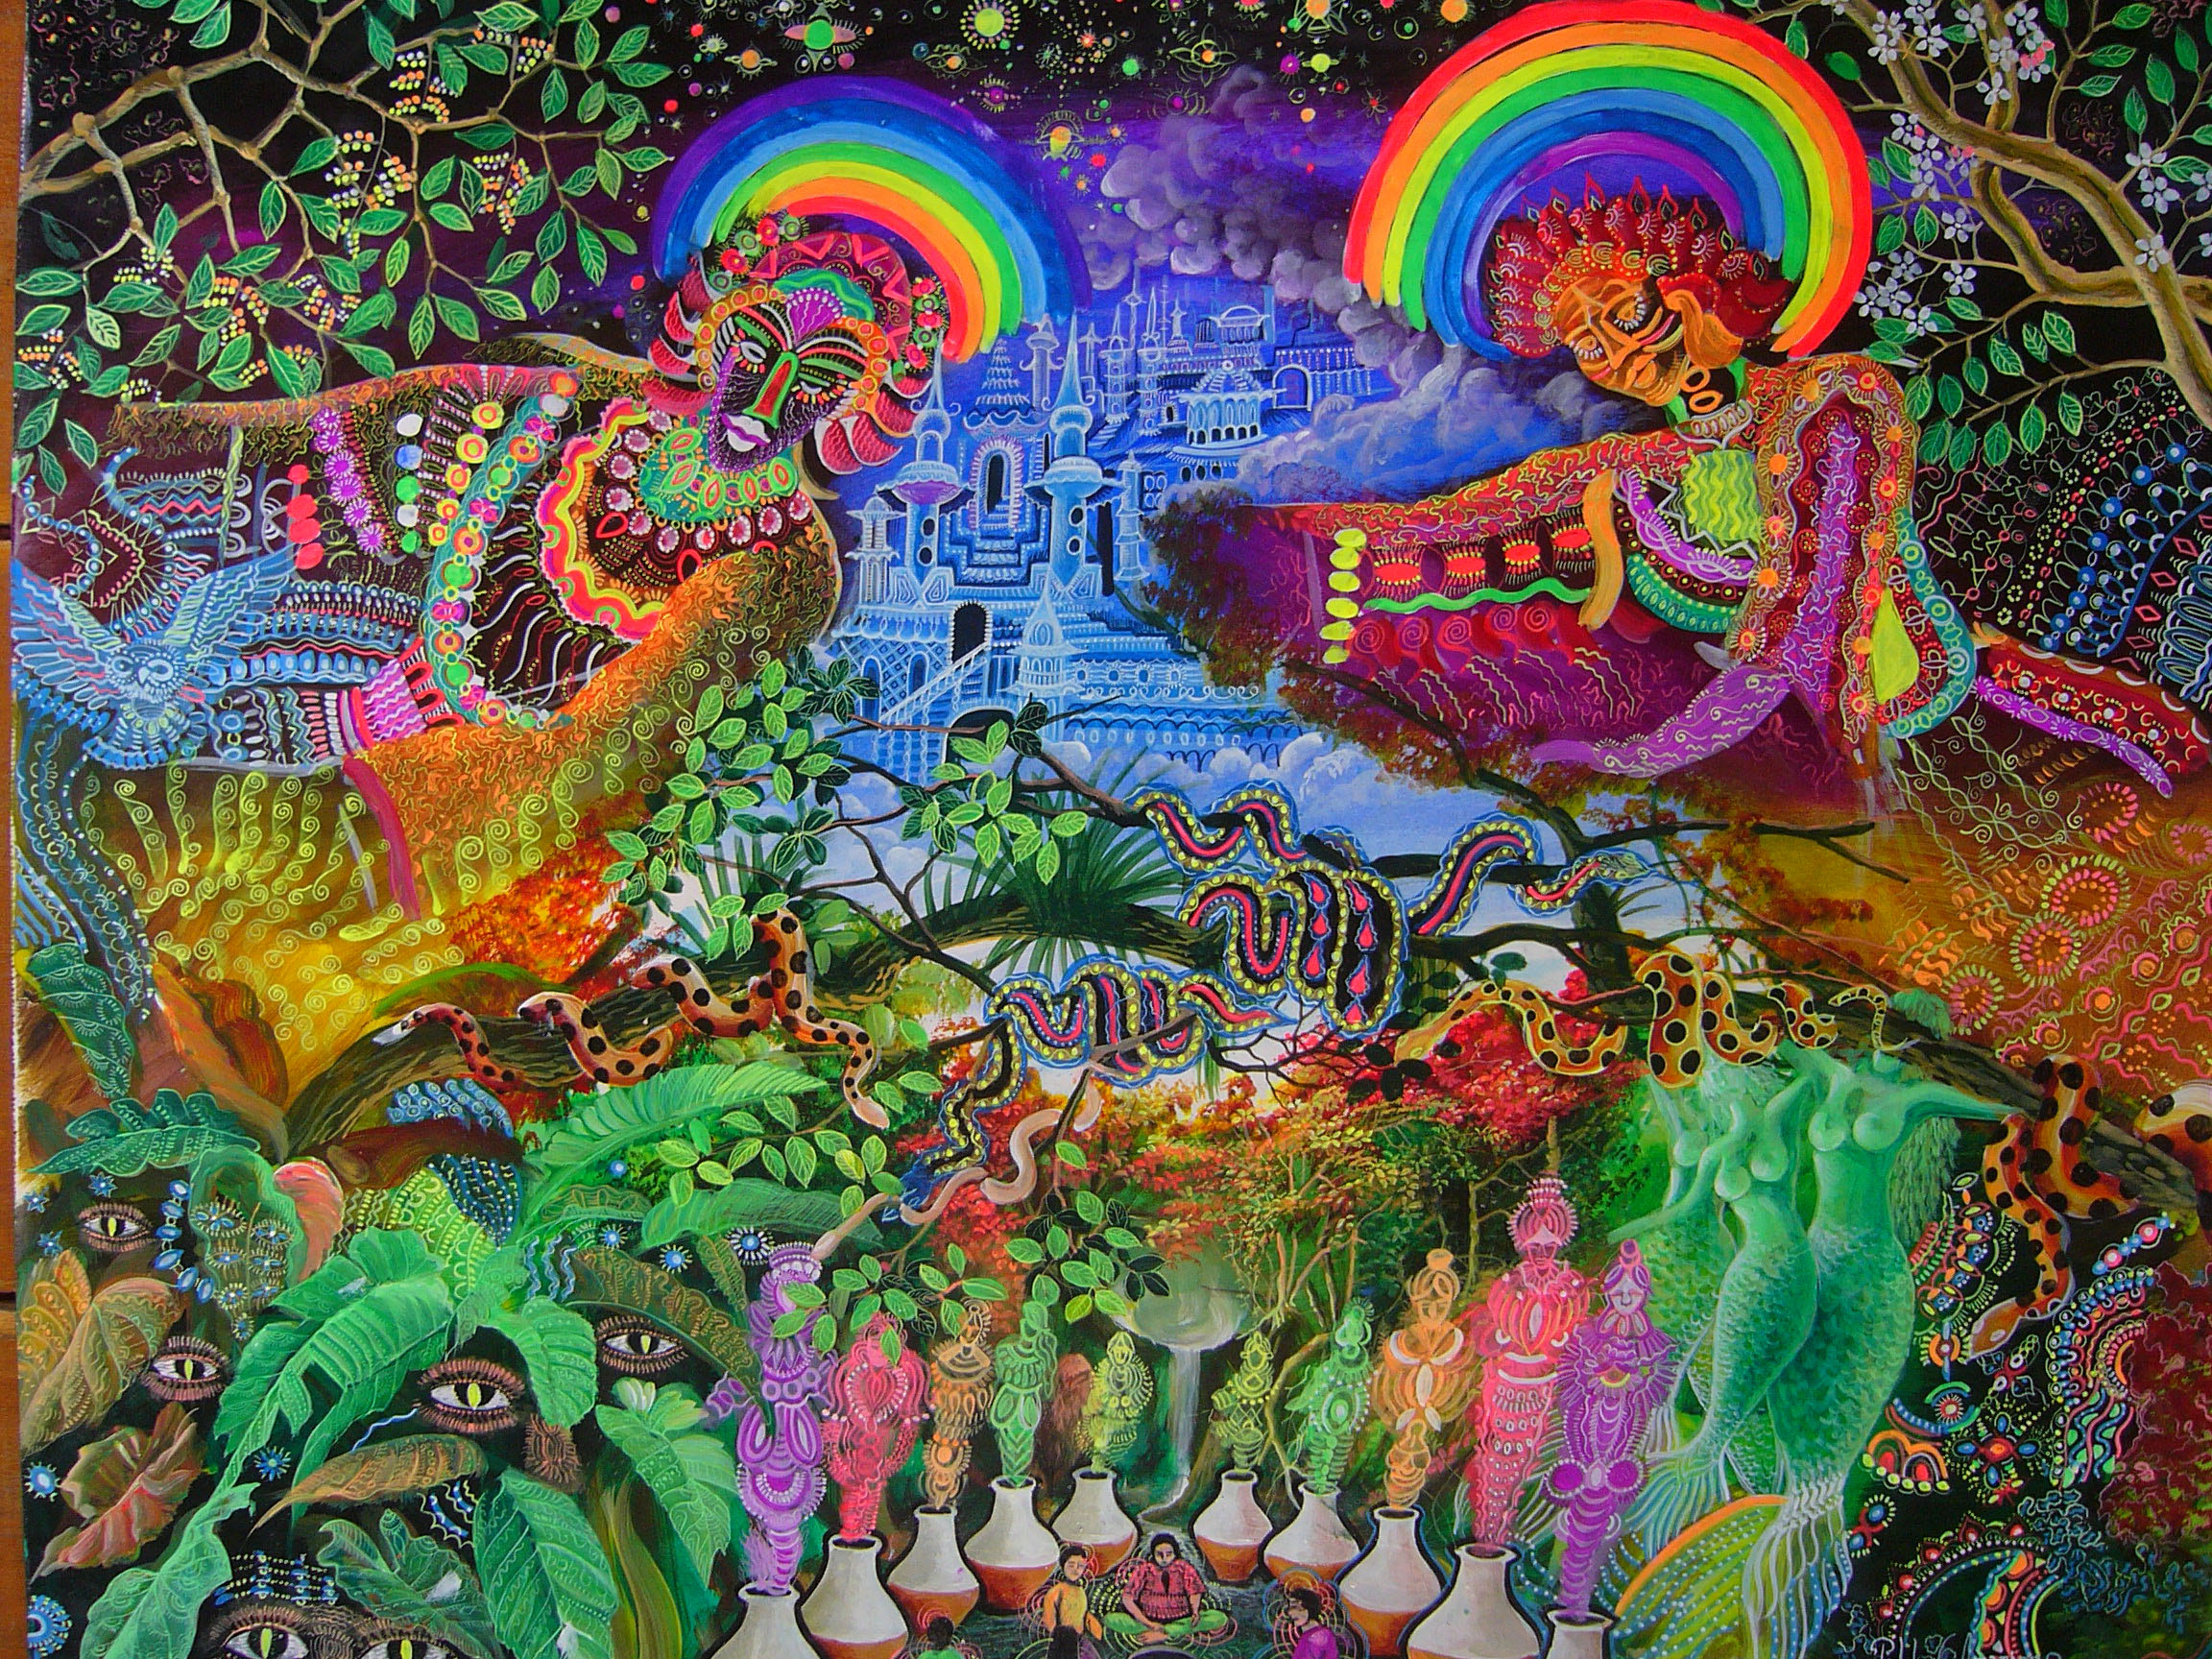 dmt and psychedelic hallucination This article attempts to break down the visual effects contained within the psychedelic experience into simple, easy to understand titles, descriptions and levelling systems.